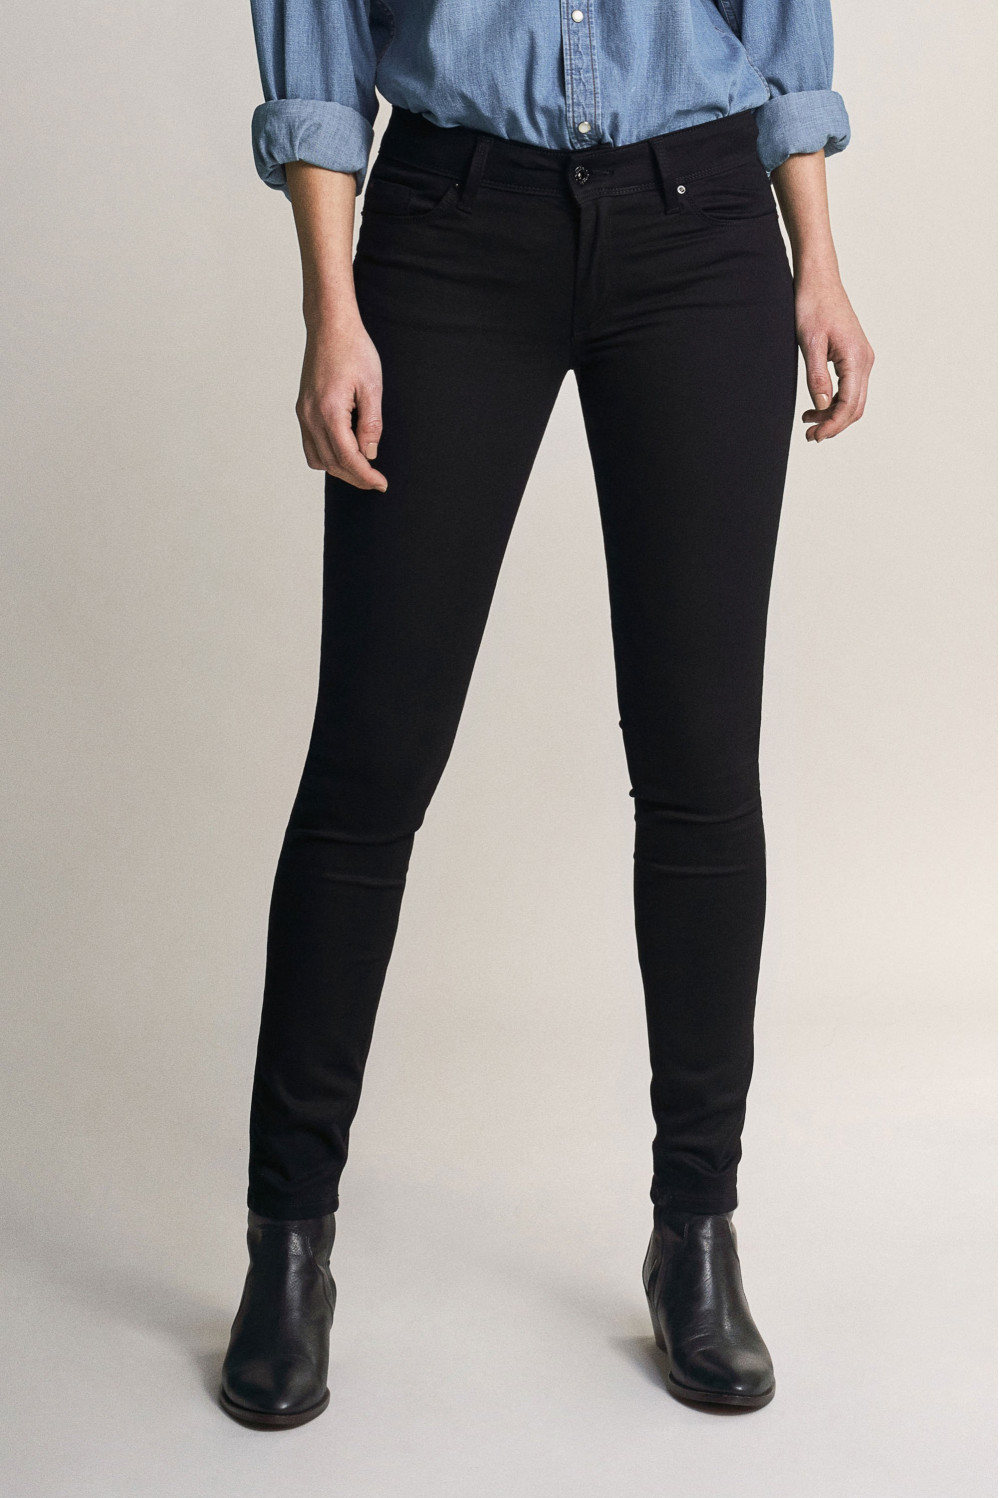 Wonder push up skinny true black jeans